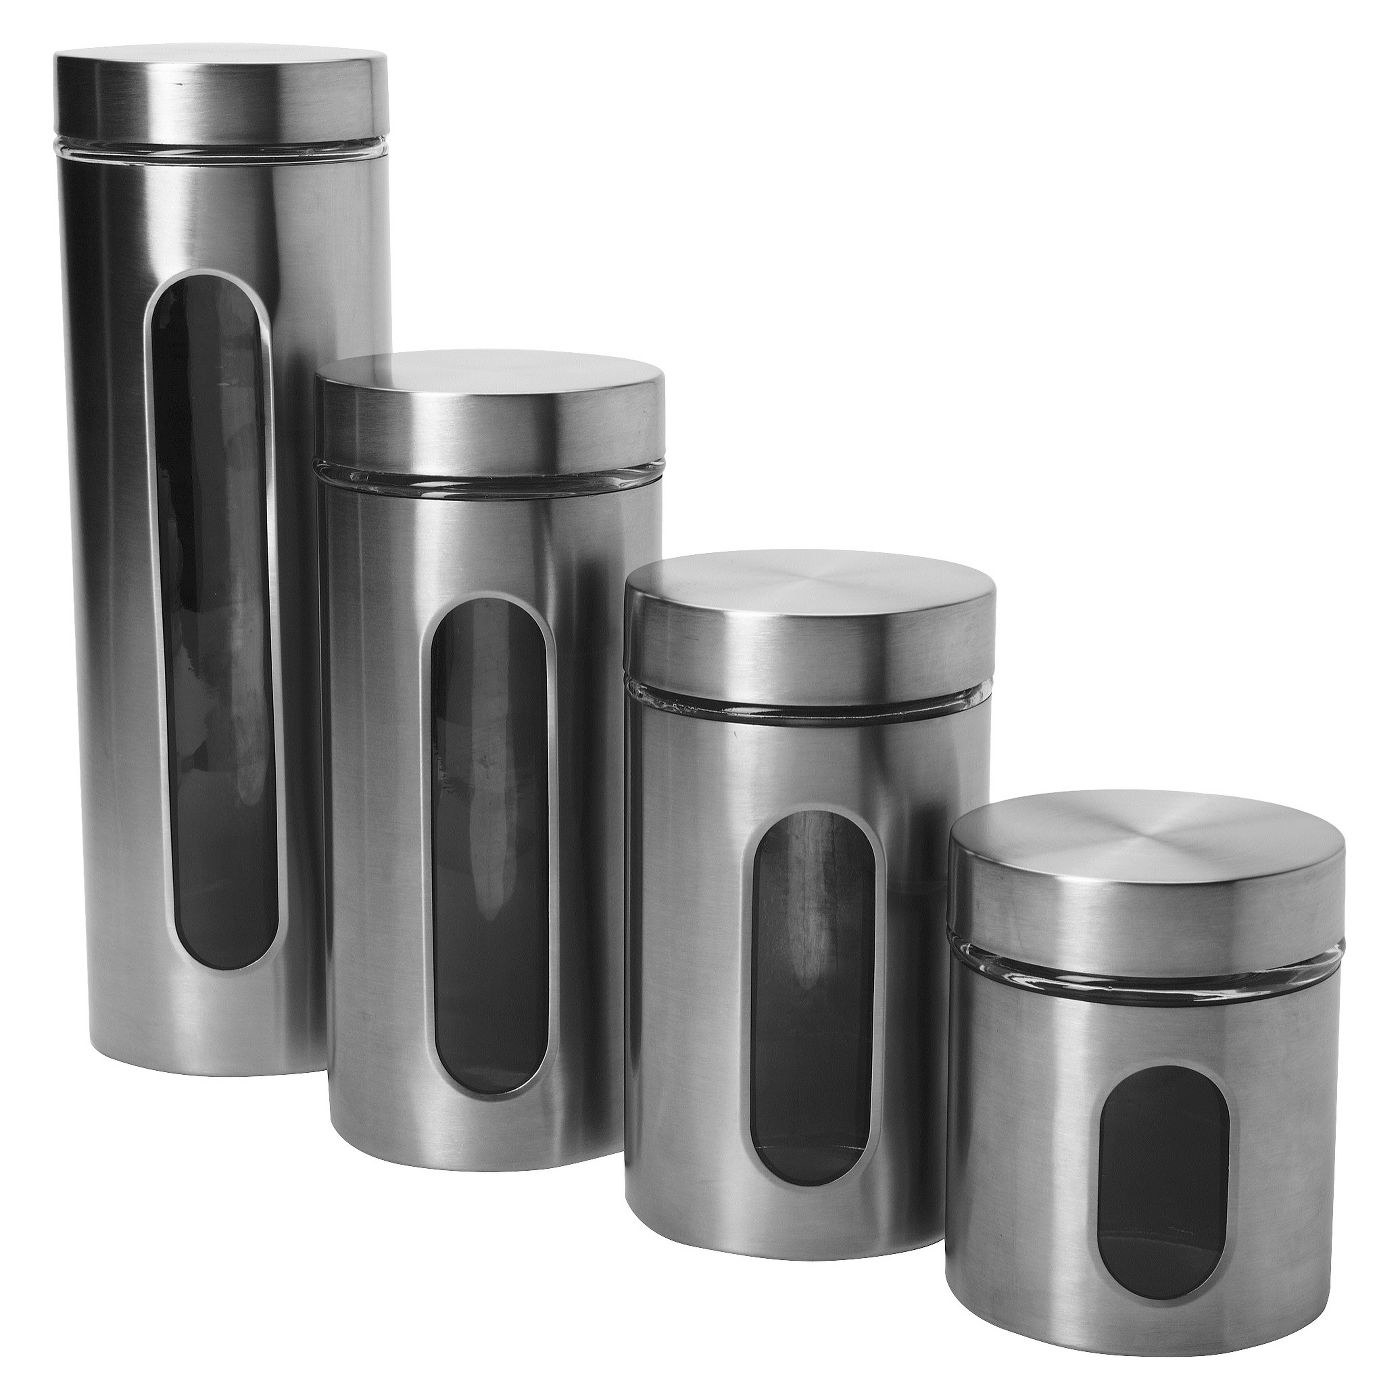 Stainless steel canisters in assorted sizes